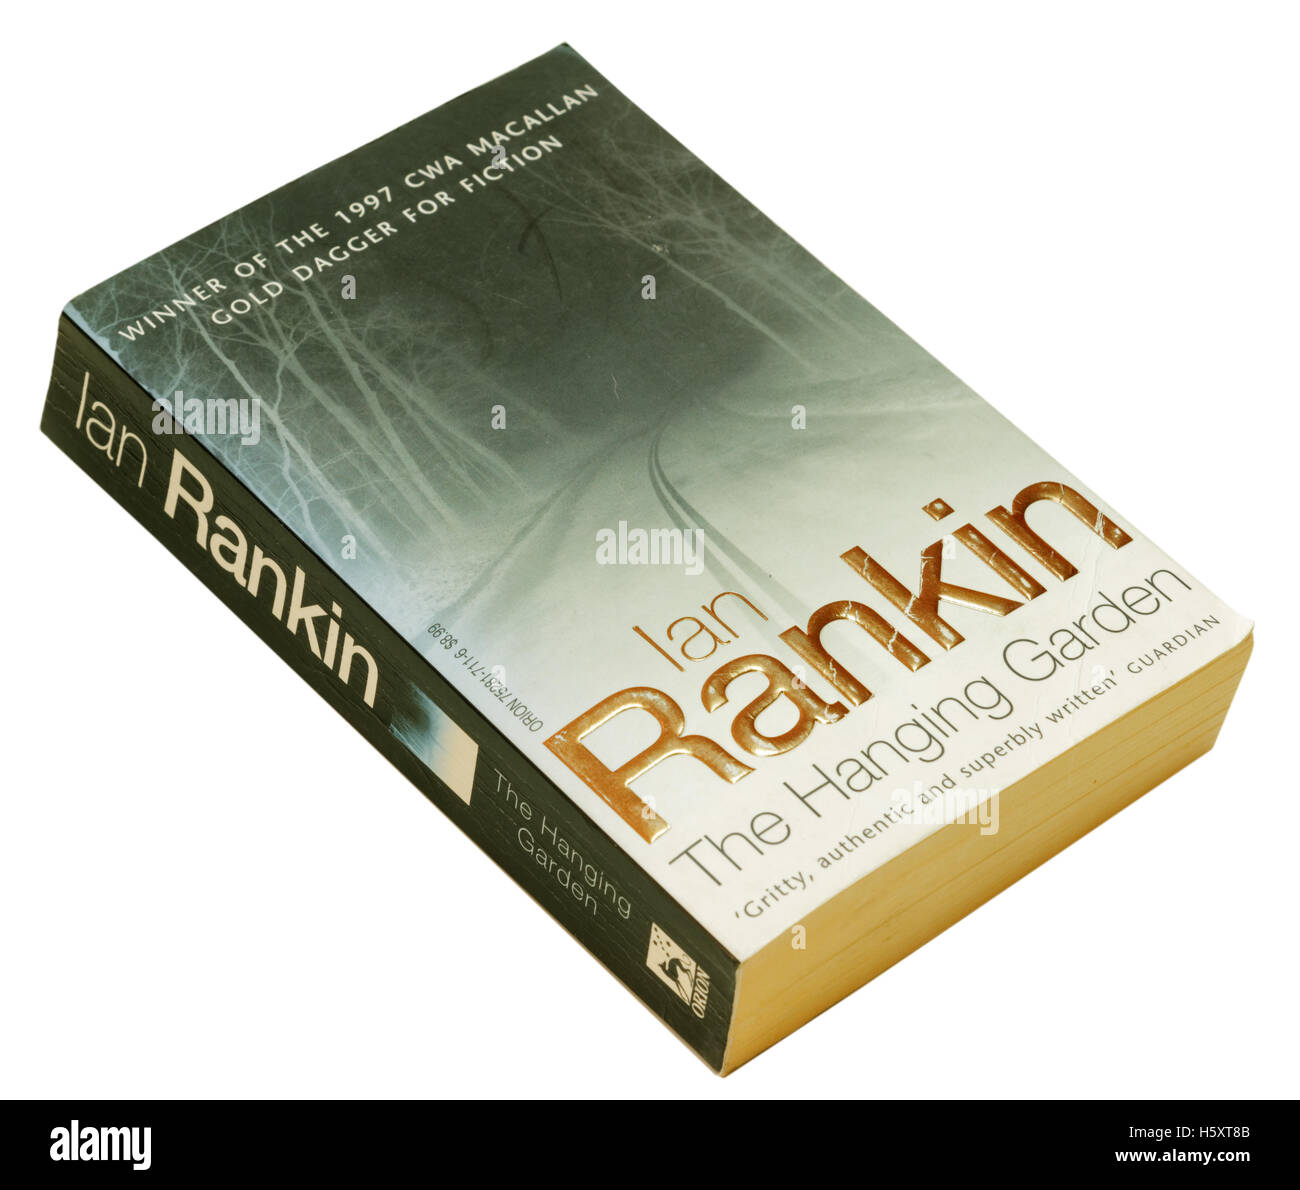 The Hanging Garden by Ian Rankin - Stock Image